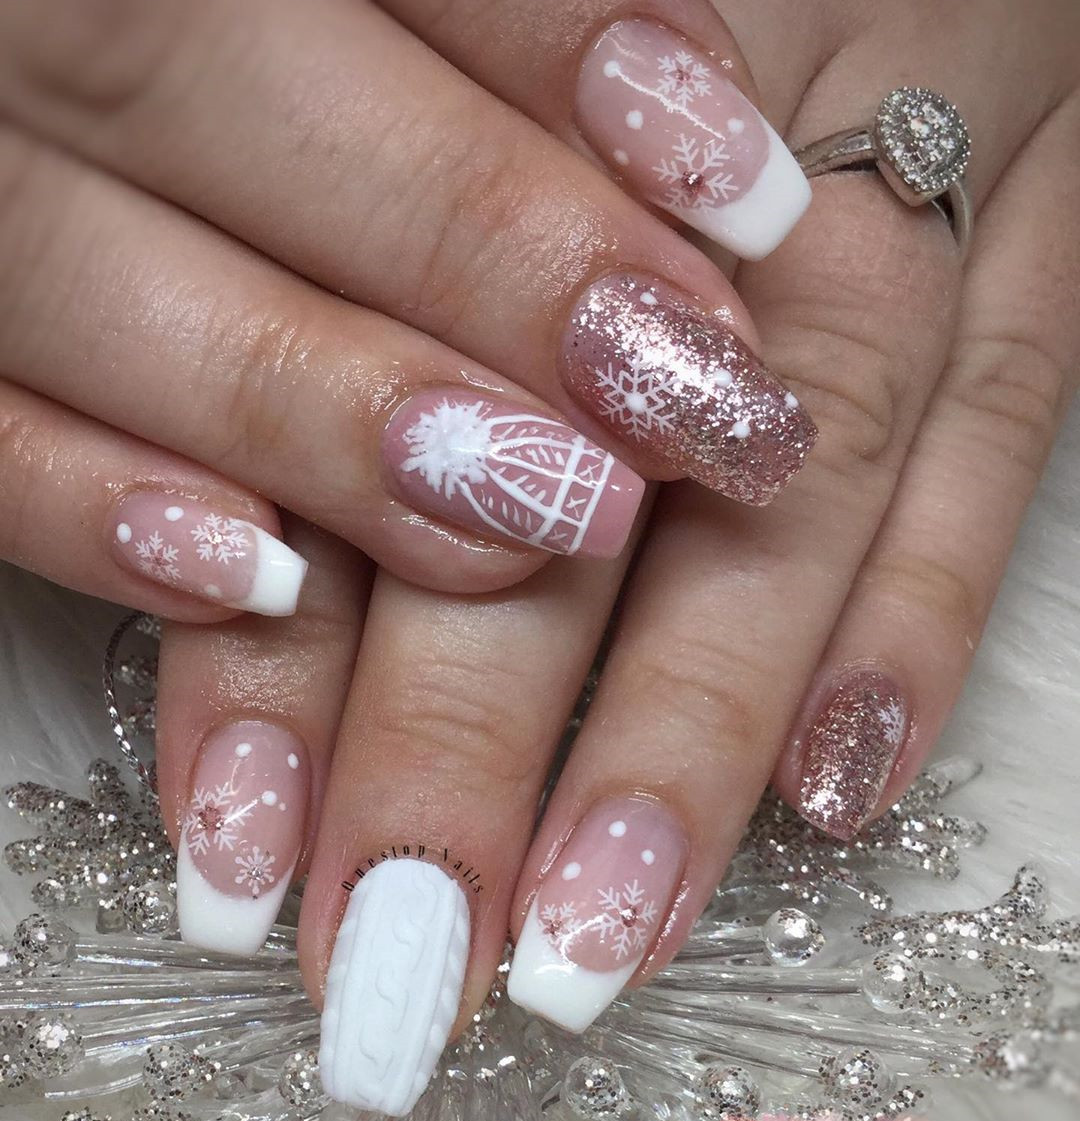 Festive Christmas Acrylic Nails Designs